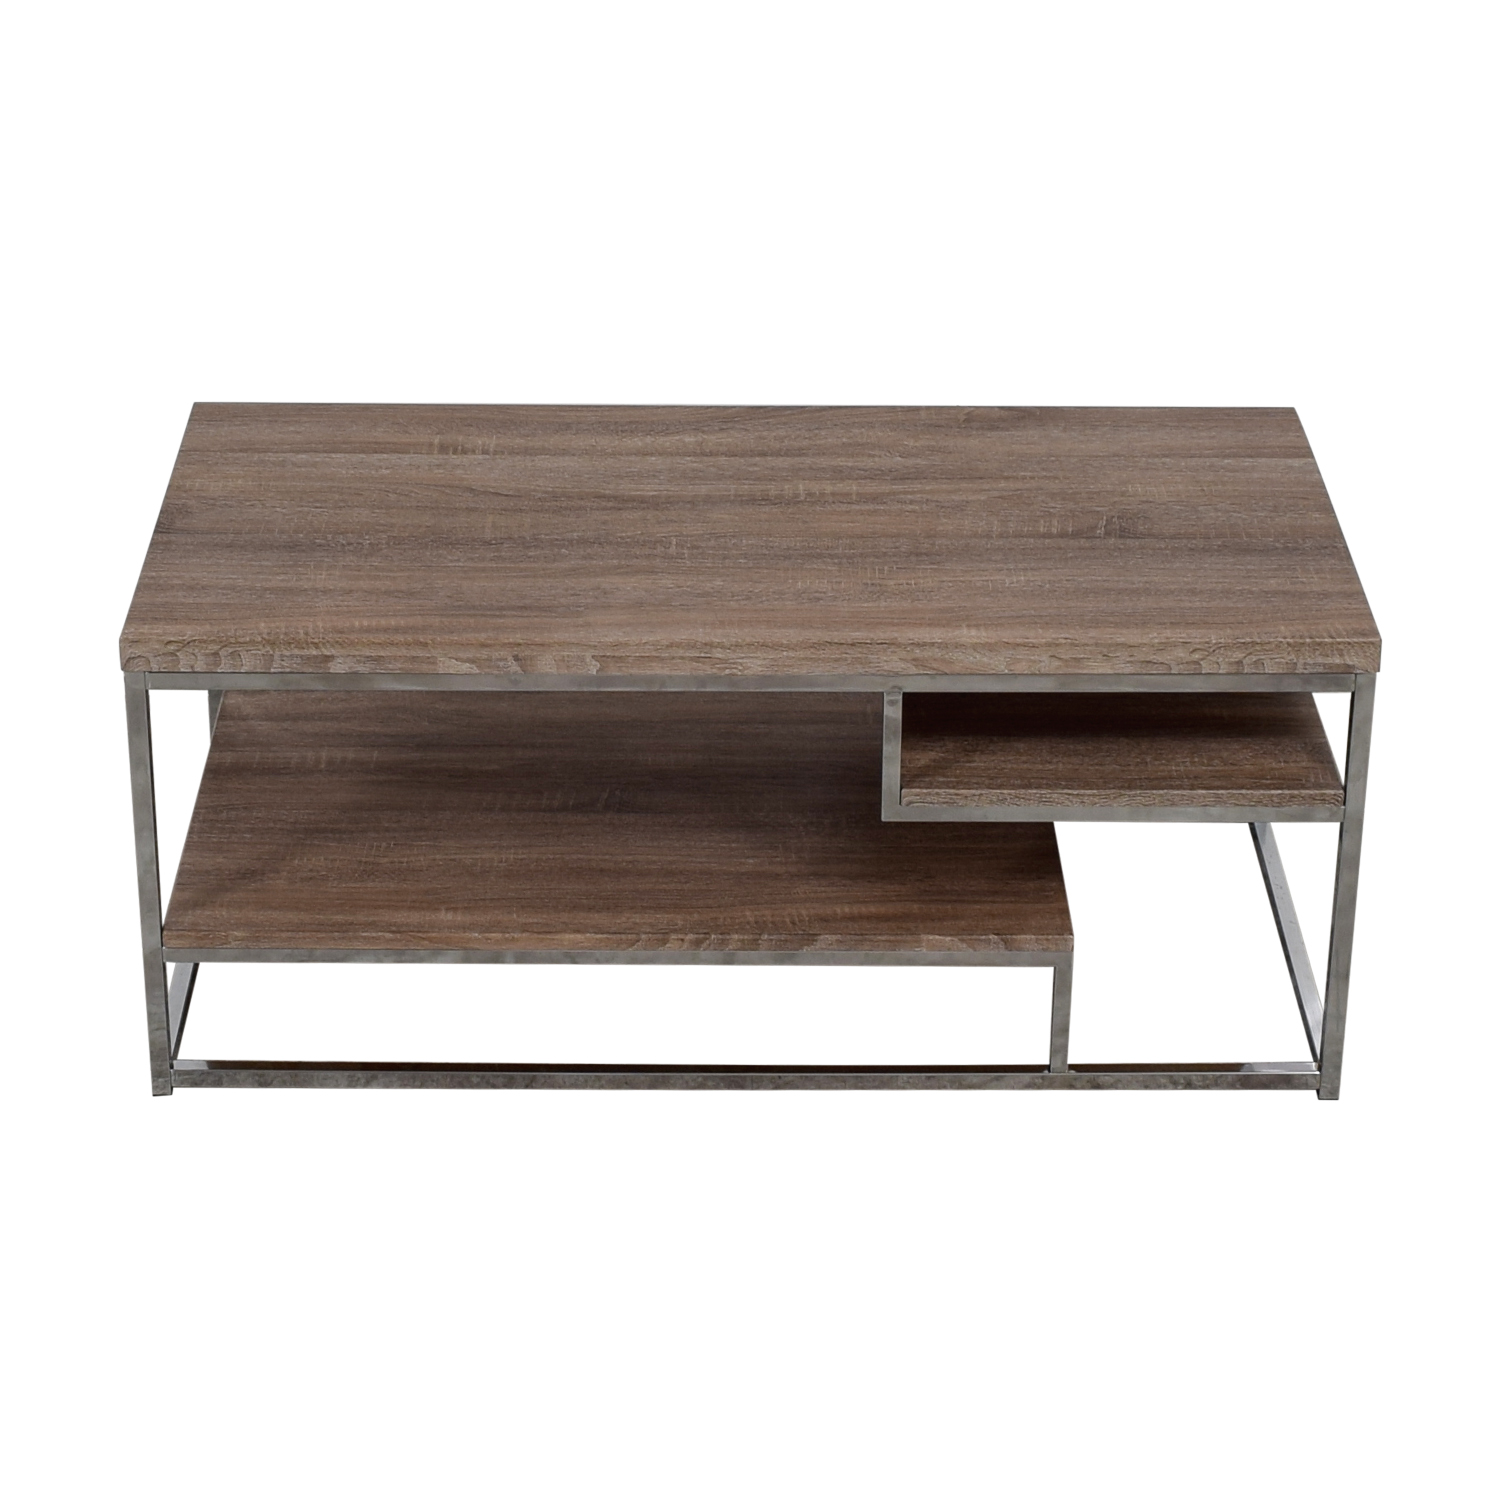 Rustic Wood and Chrome Coffee Table or Media Unit Tables